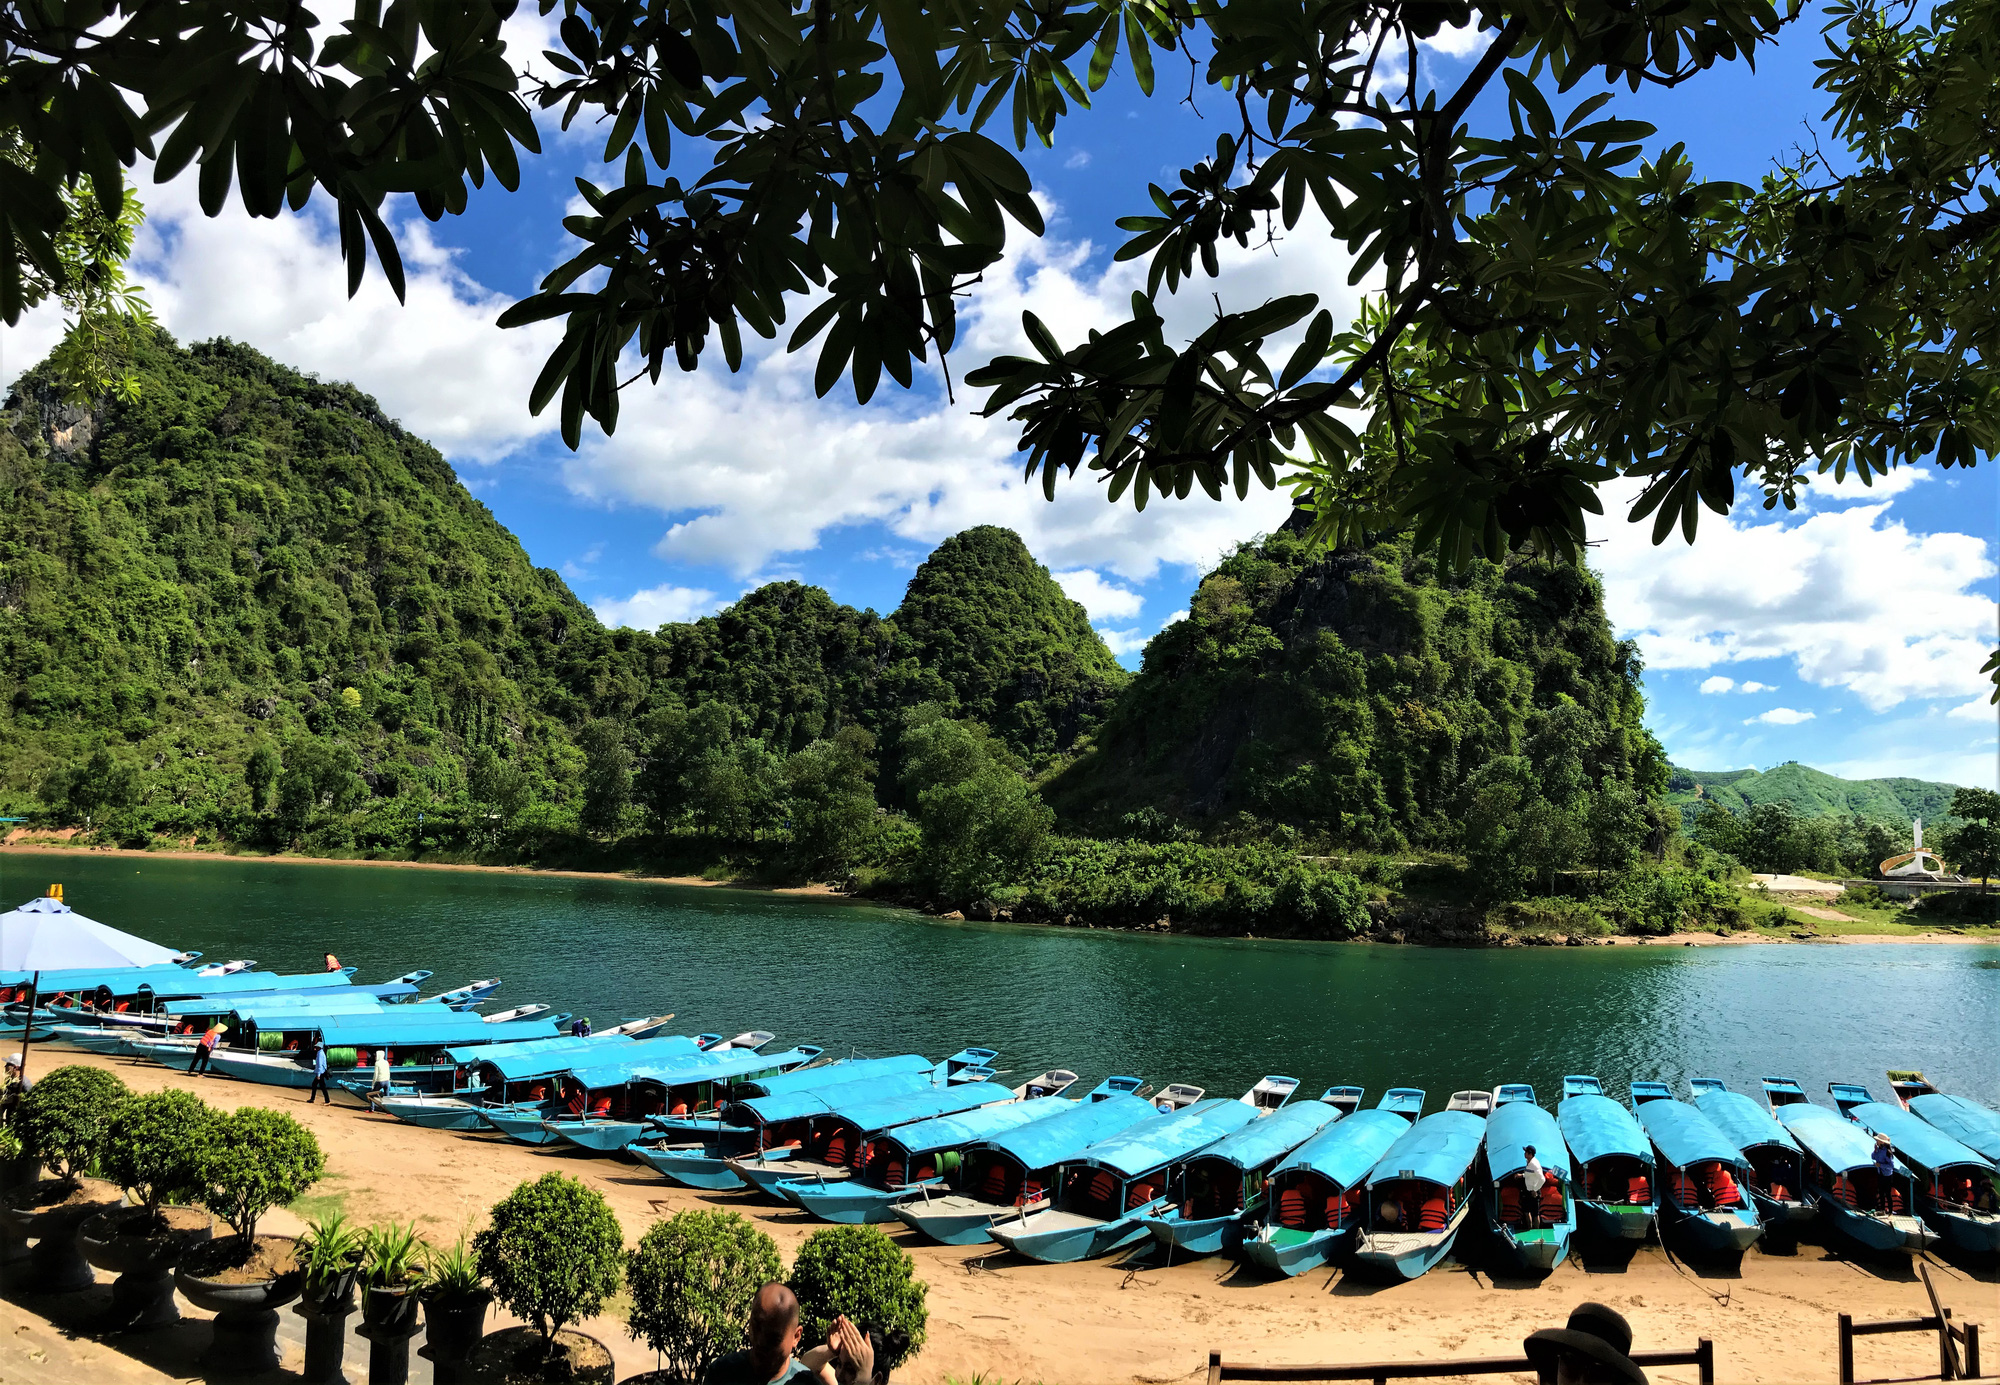 Tourists boat are lined up along the shore in this photo before a trip to Phong Nha Cave in Quang Binh Province, Vietnam.